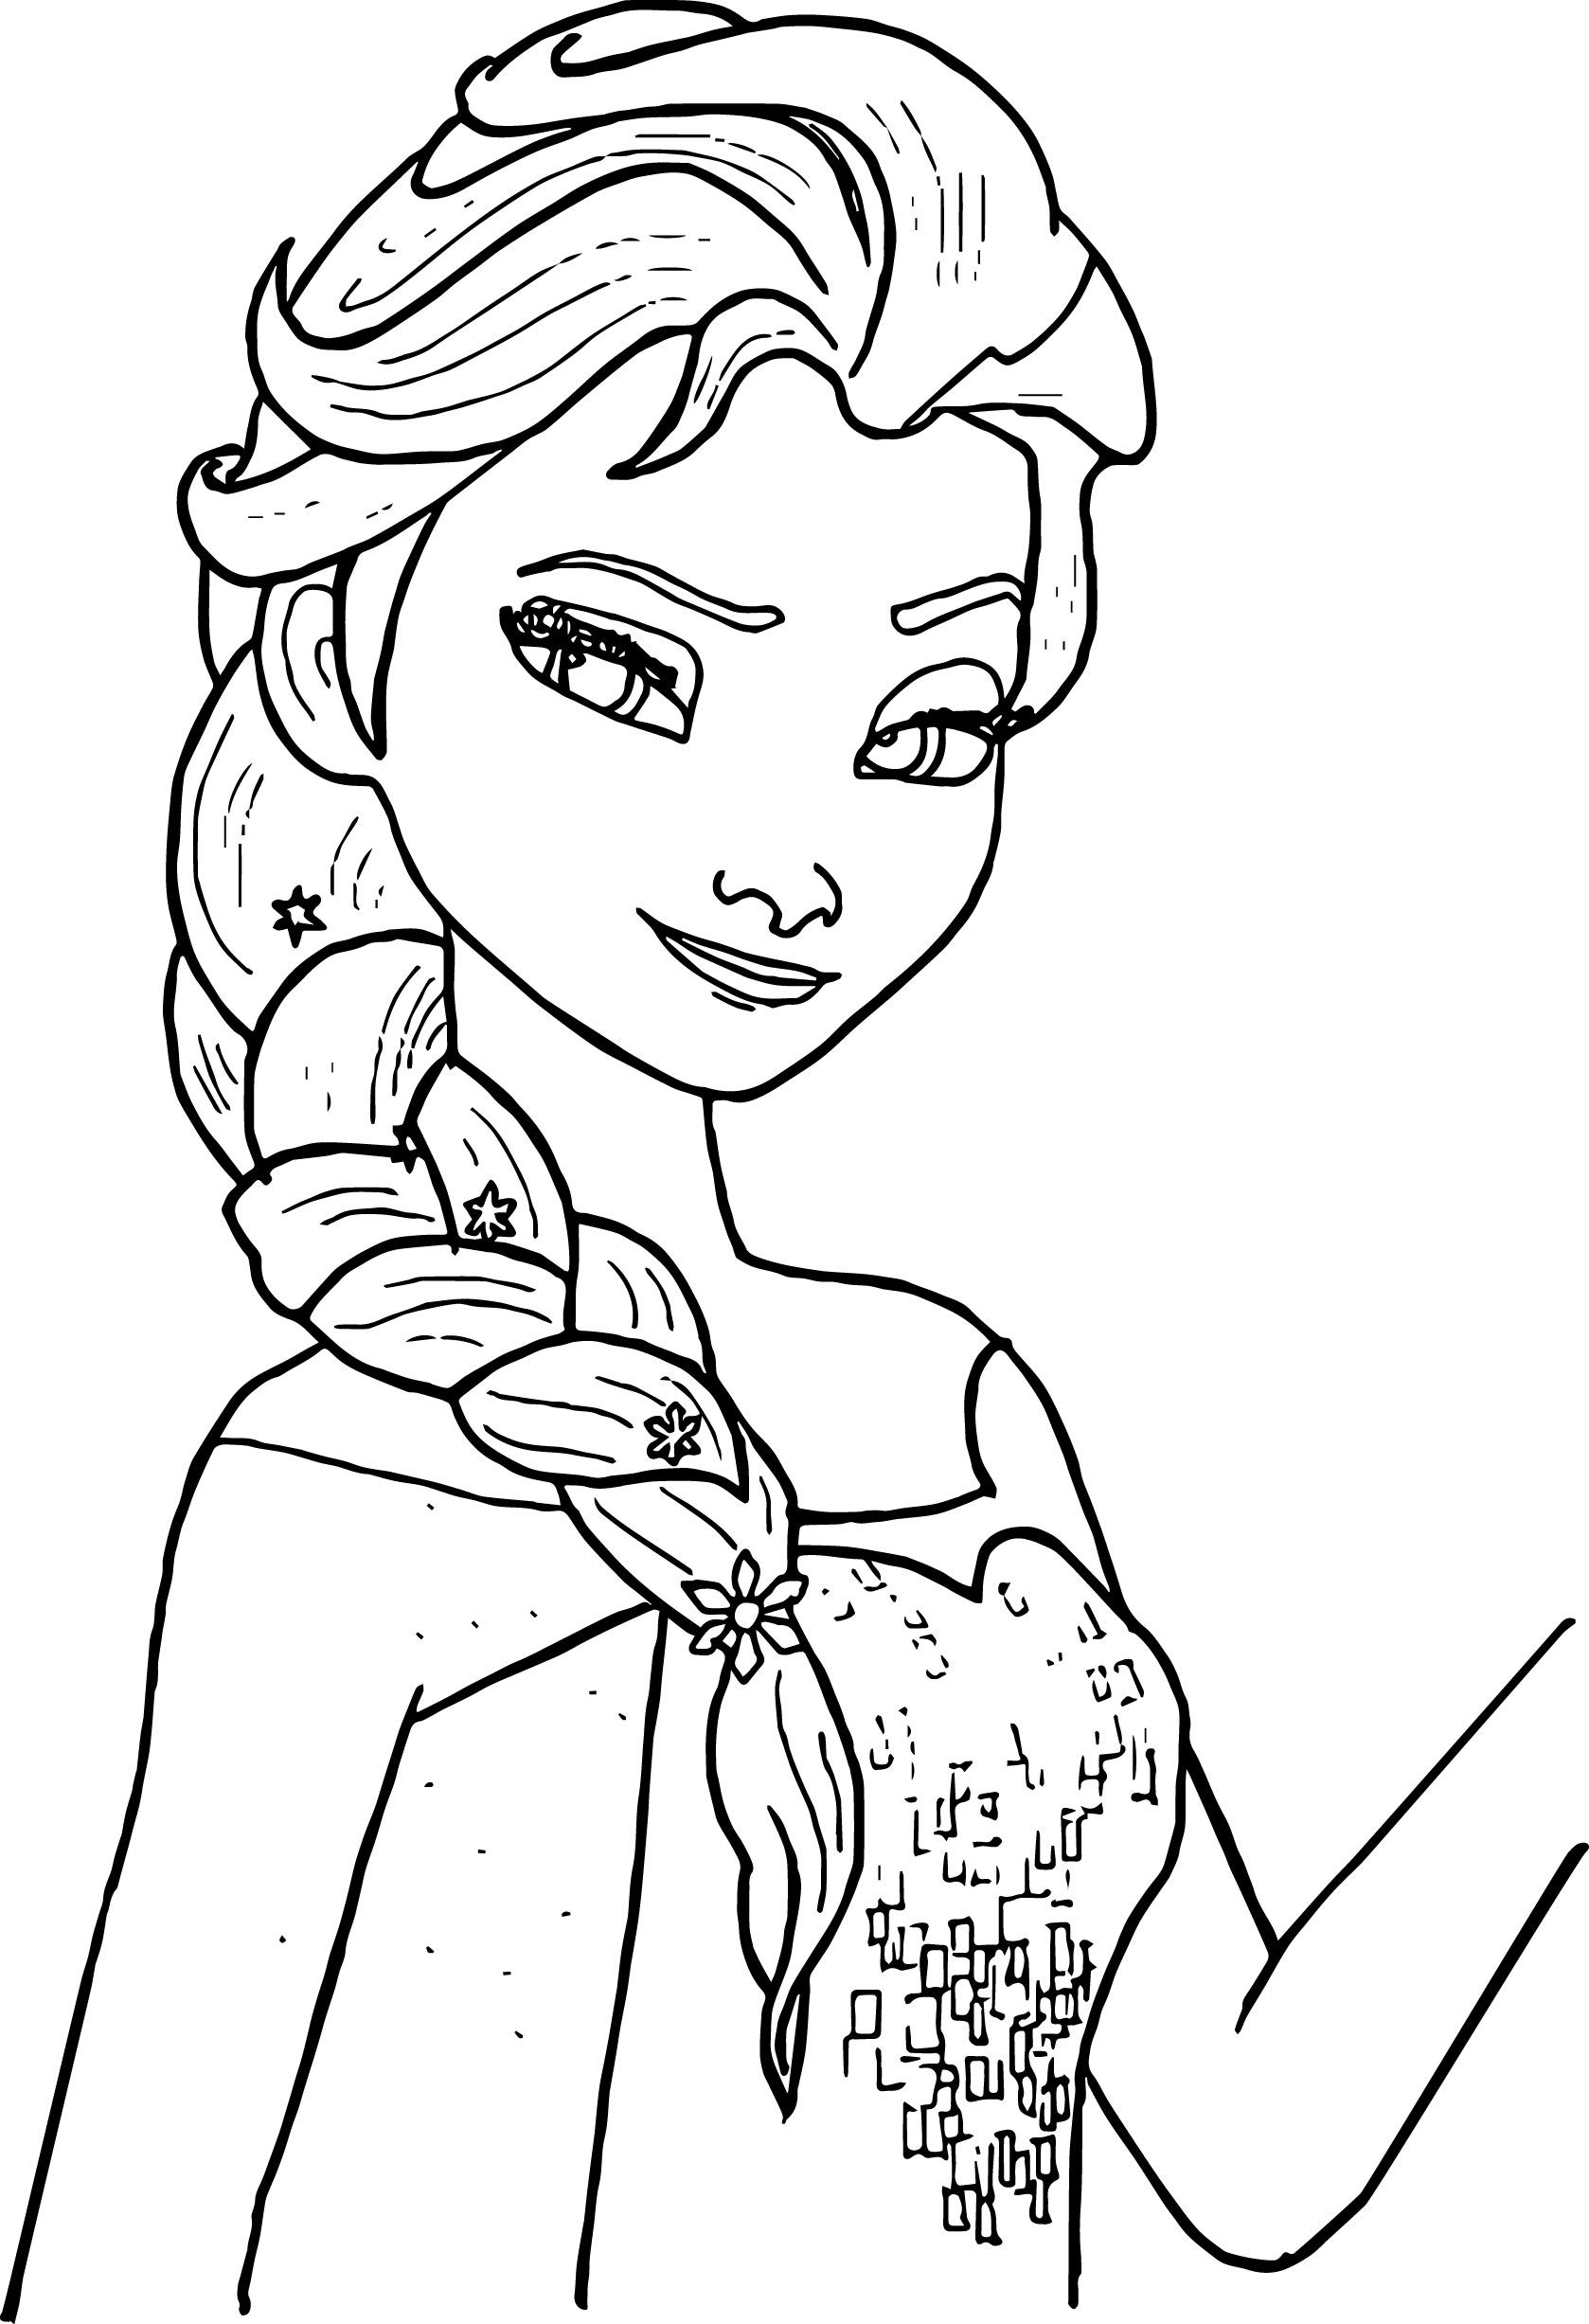 coloring pictures of frozen characters free printable elsa coloring pages for kids best coloring frozen characters pictures of